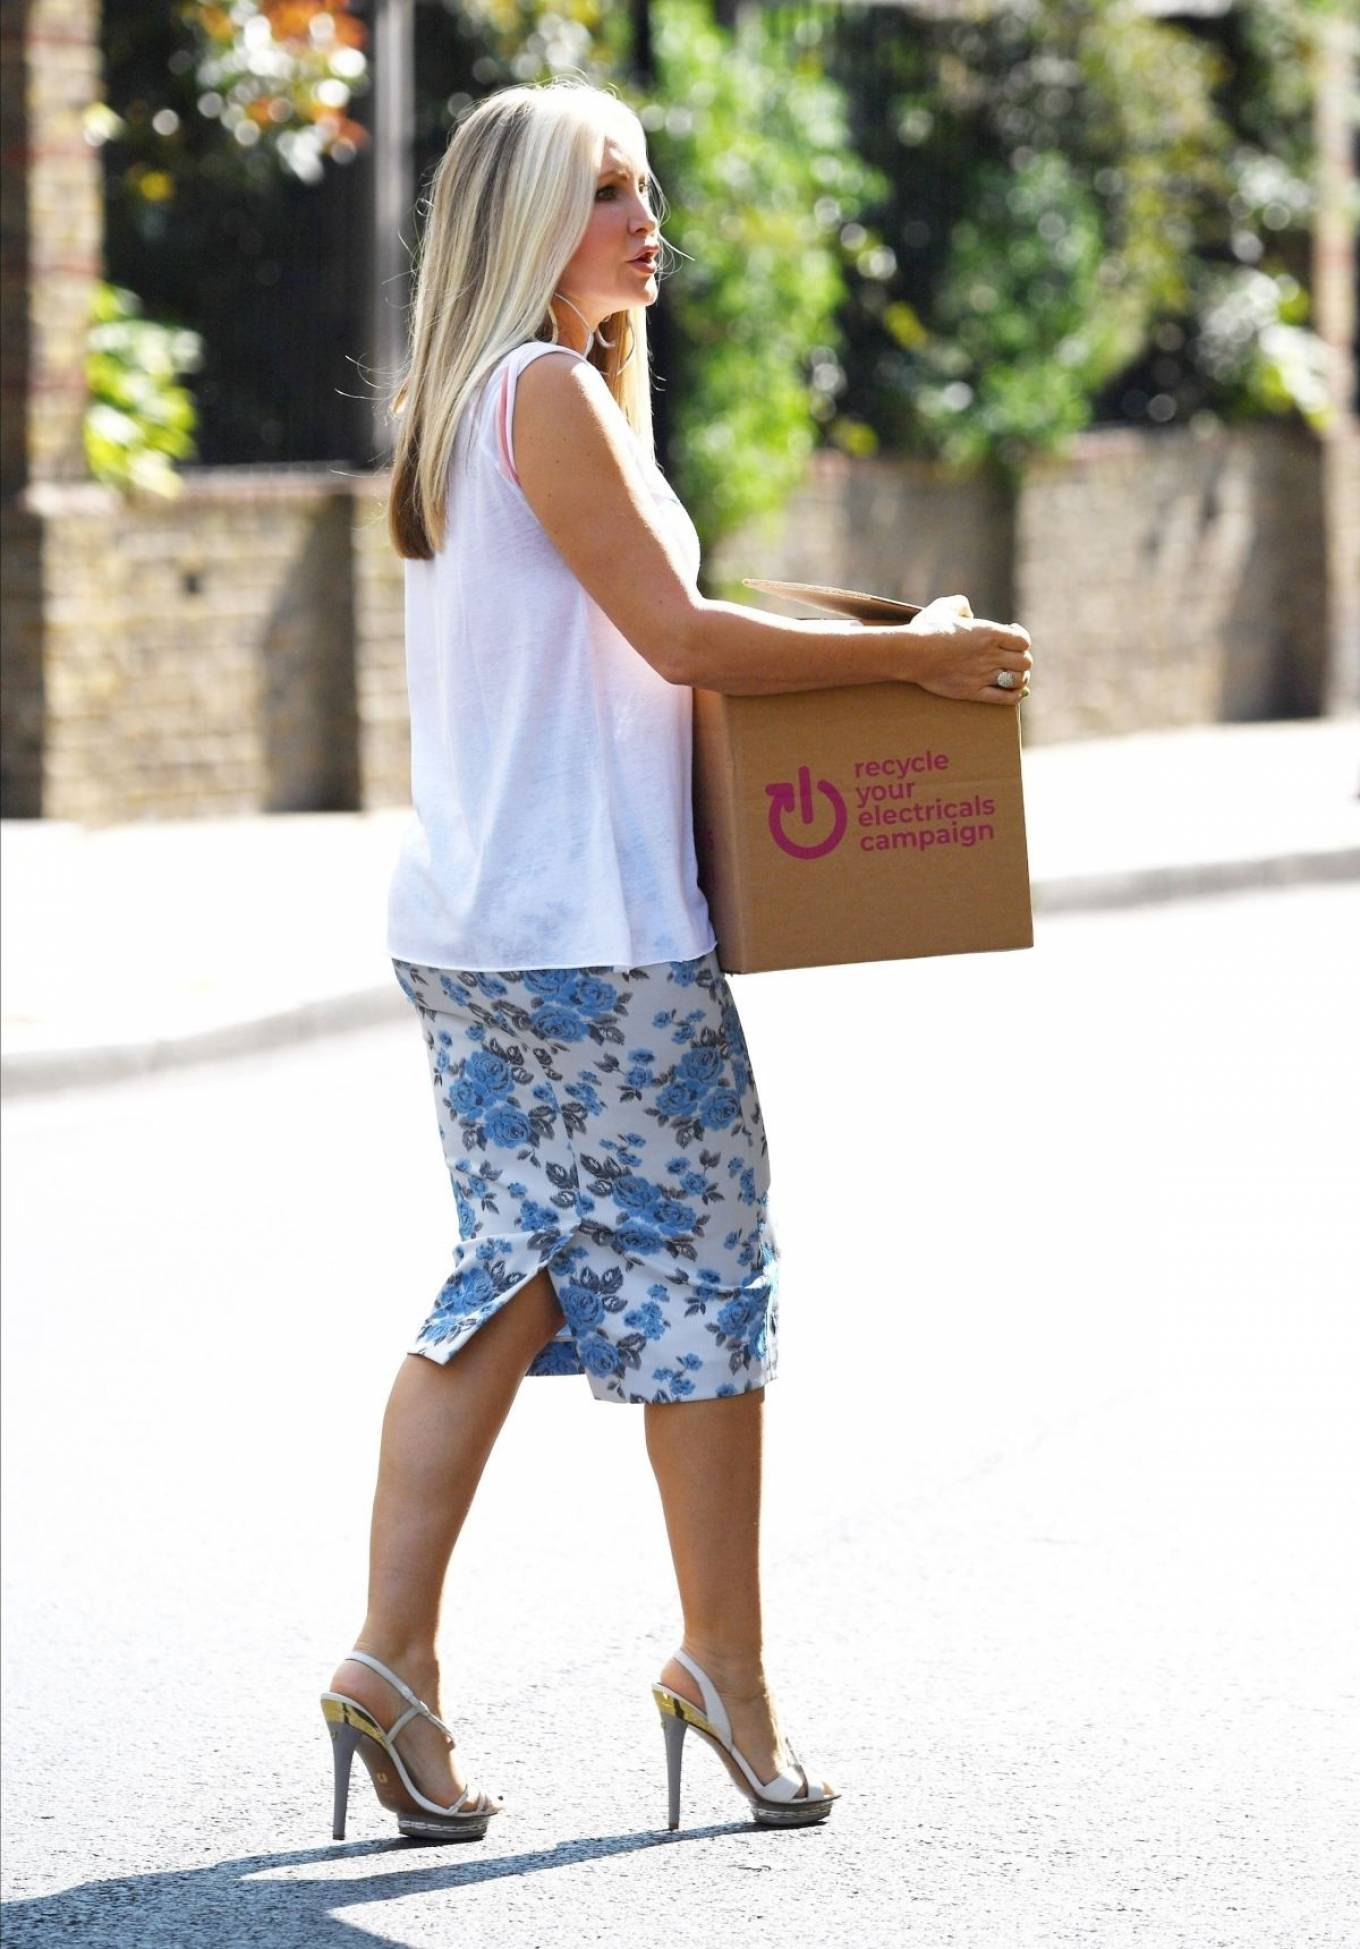 Caprice Bourret - Seen while donating Goods to Charity in Londonorum